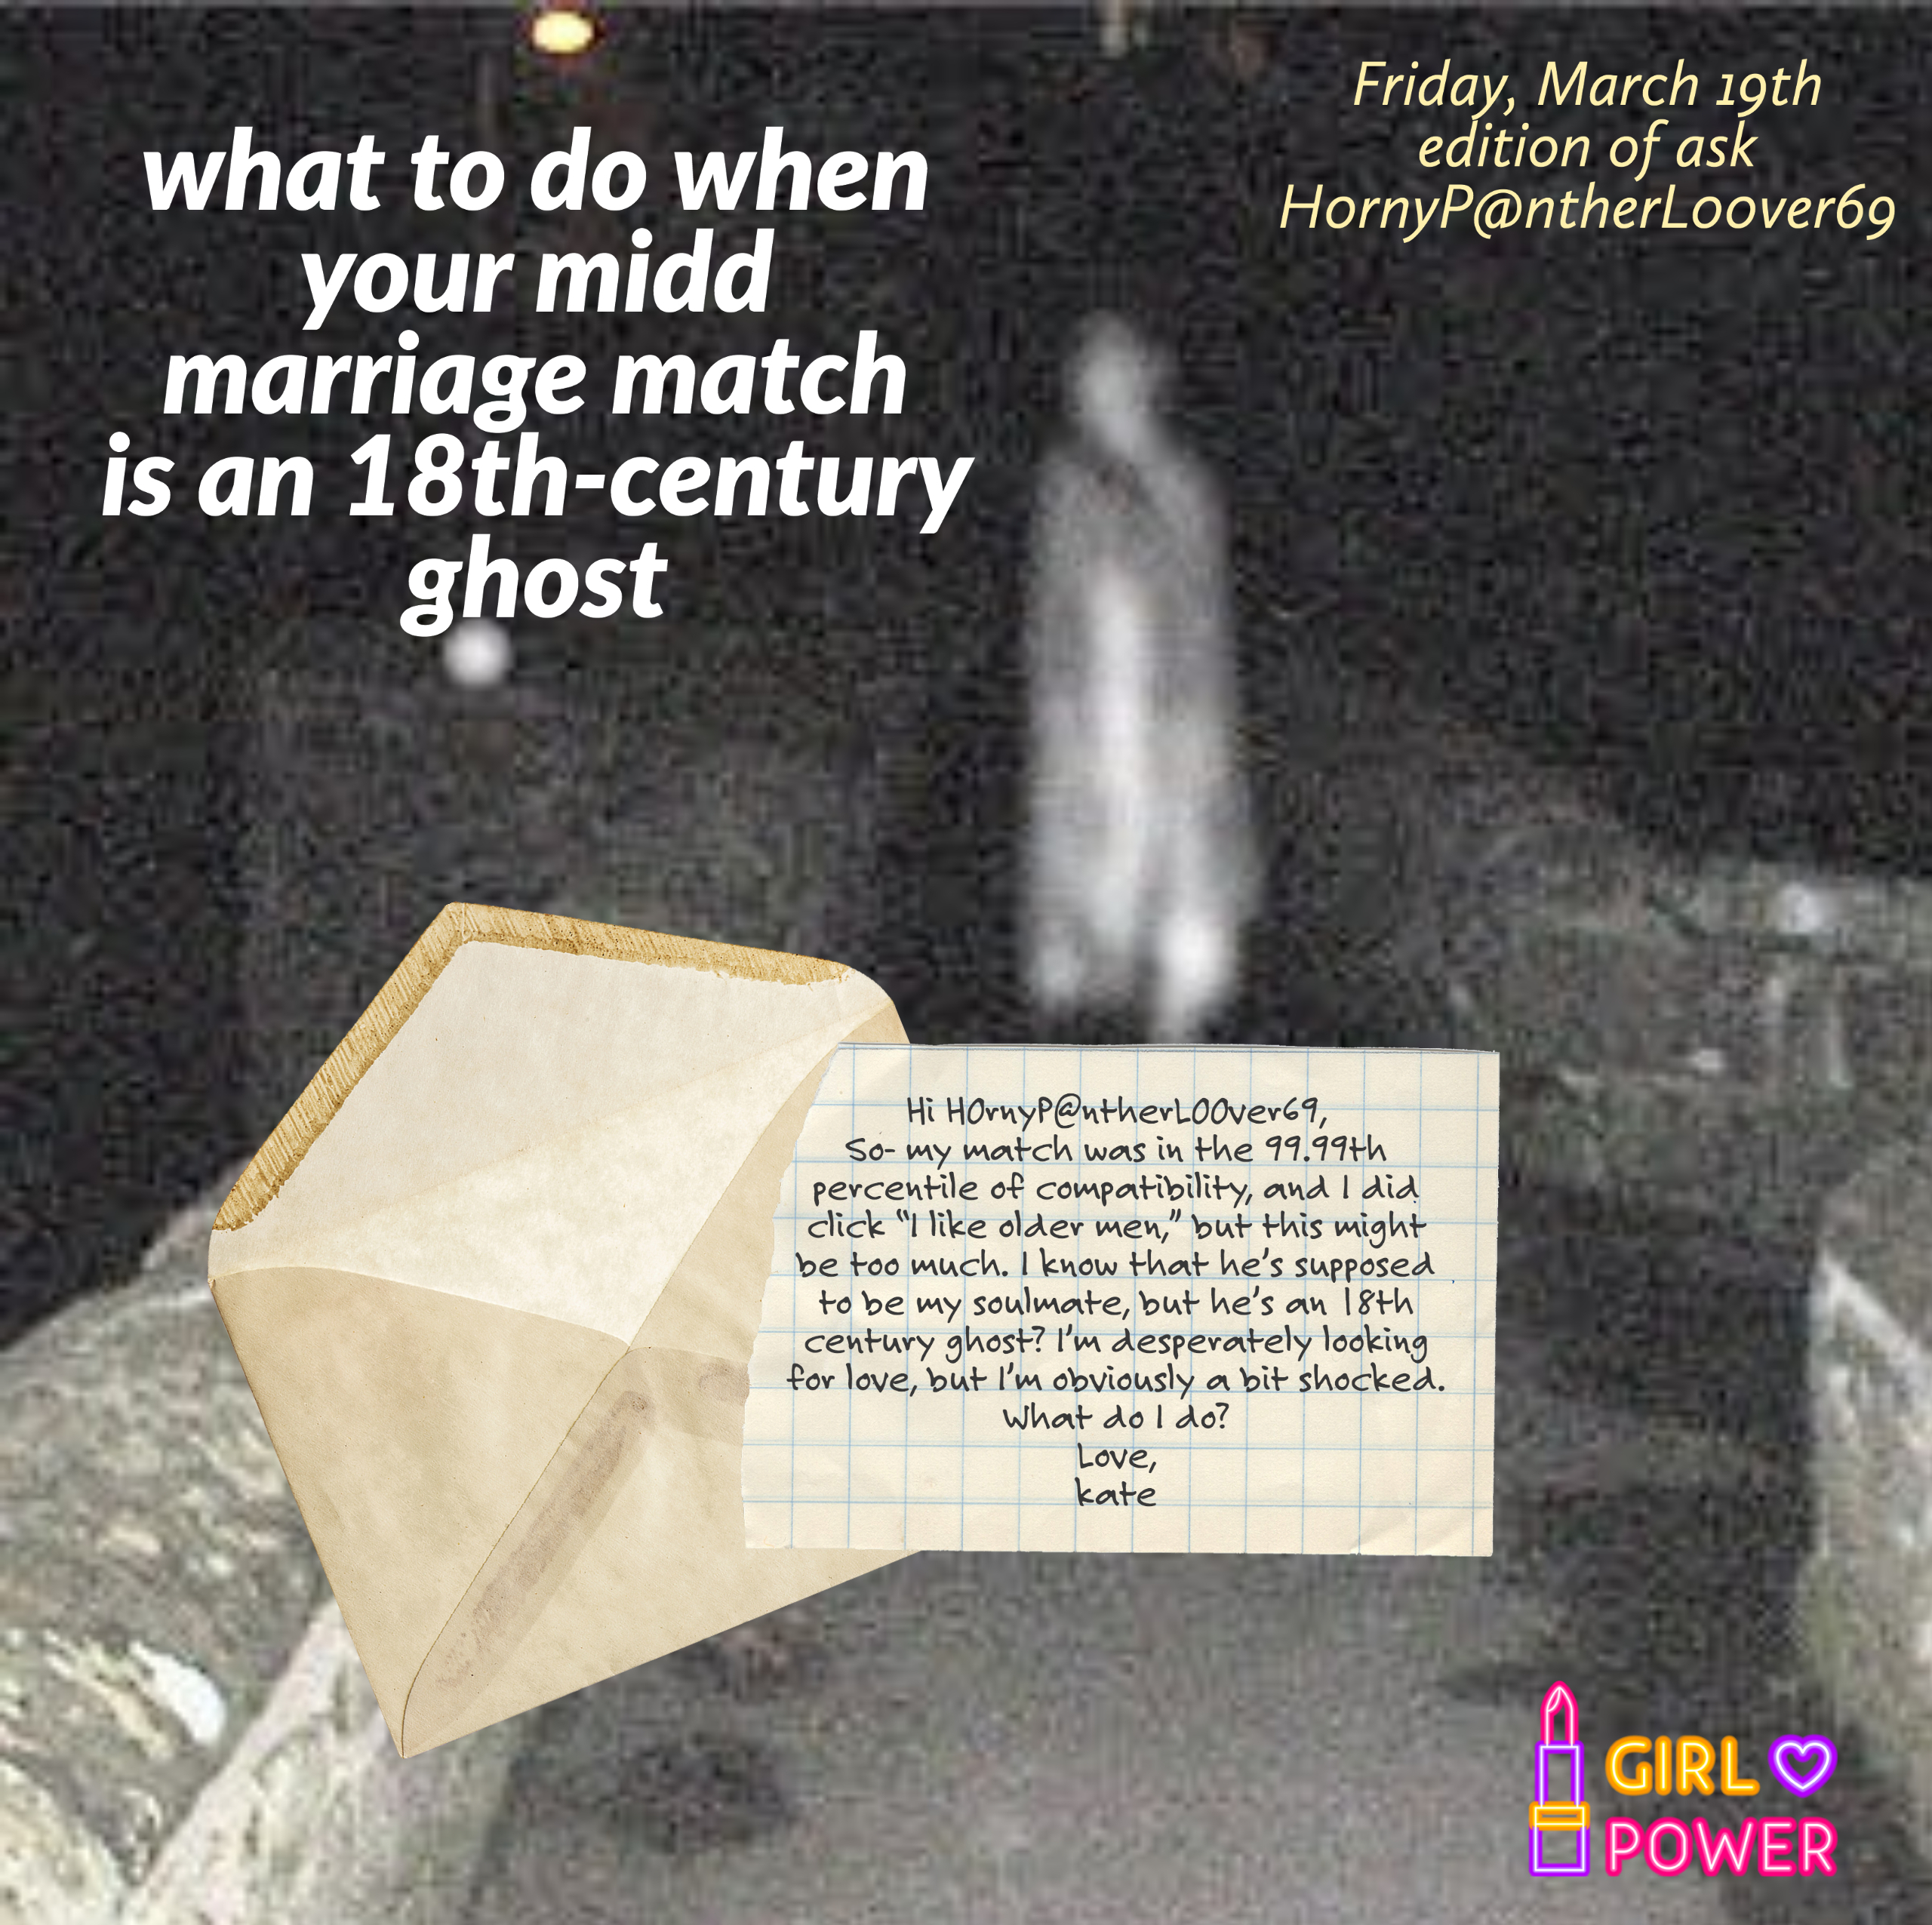 What do I do if my Midd Marriage Match is an 18th-century Ghost?